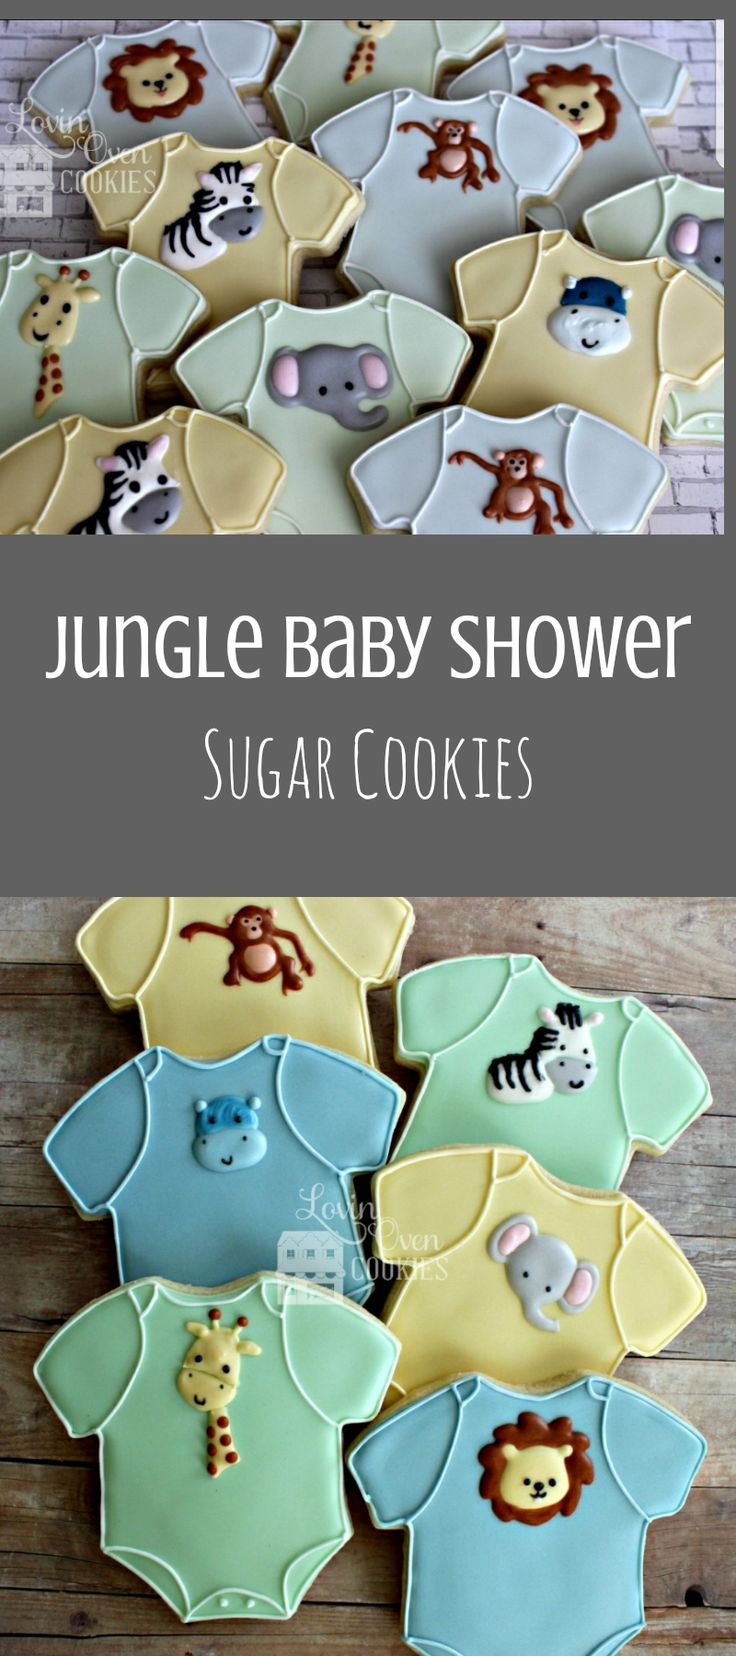 Baby Onesie Safari/Jungle Theme Decorated Sugar Cookie - Baby Shower Favor - Giraffe, Lion, Elephant #affiliate